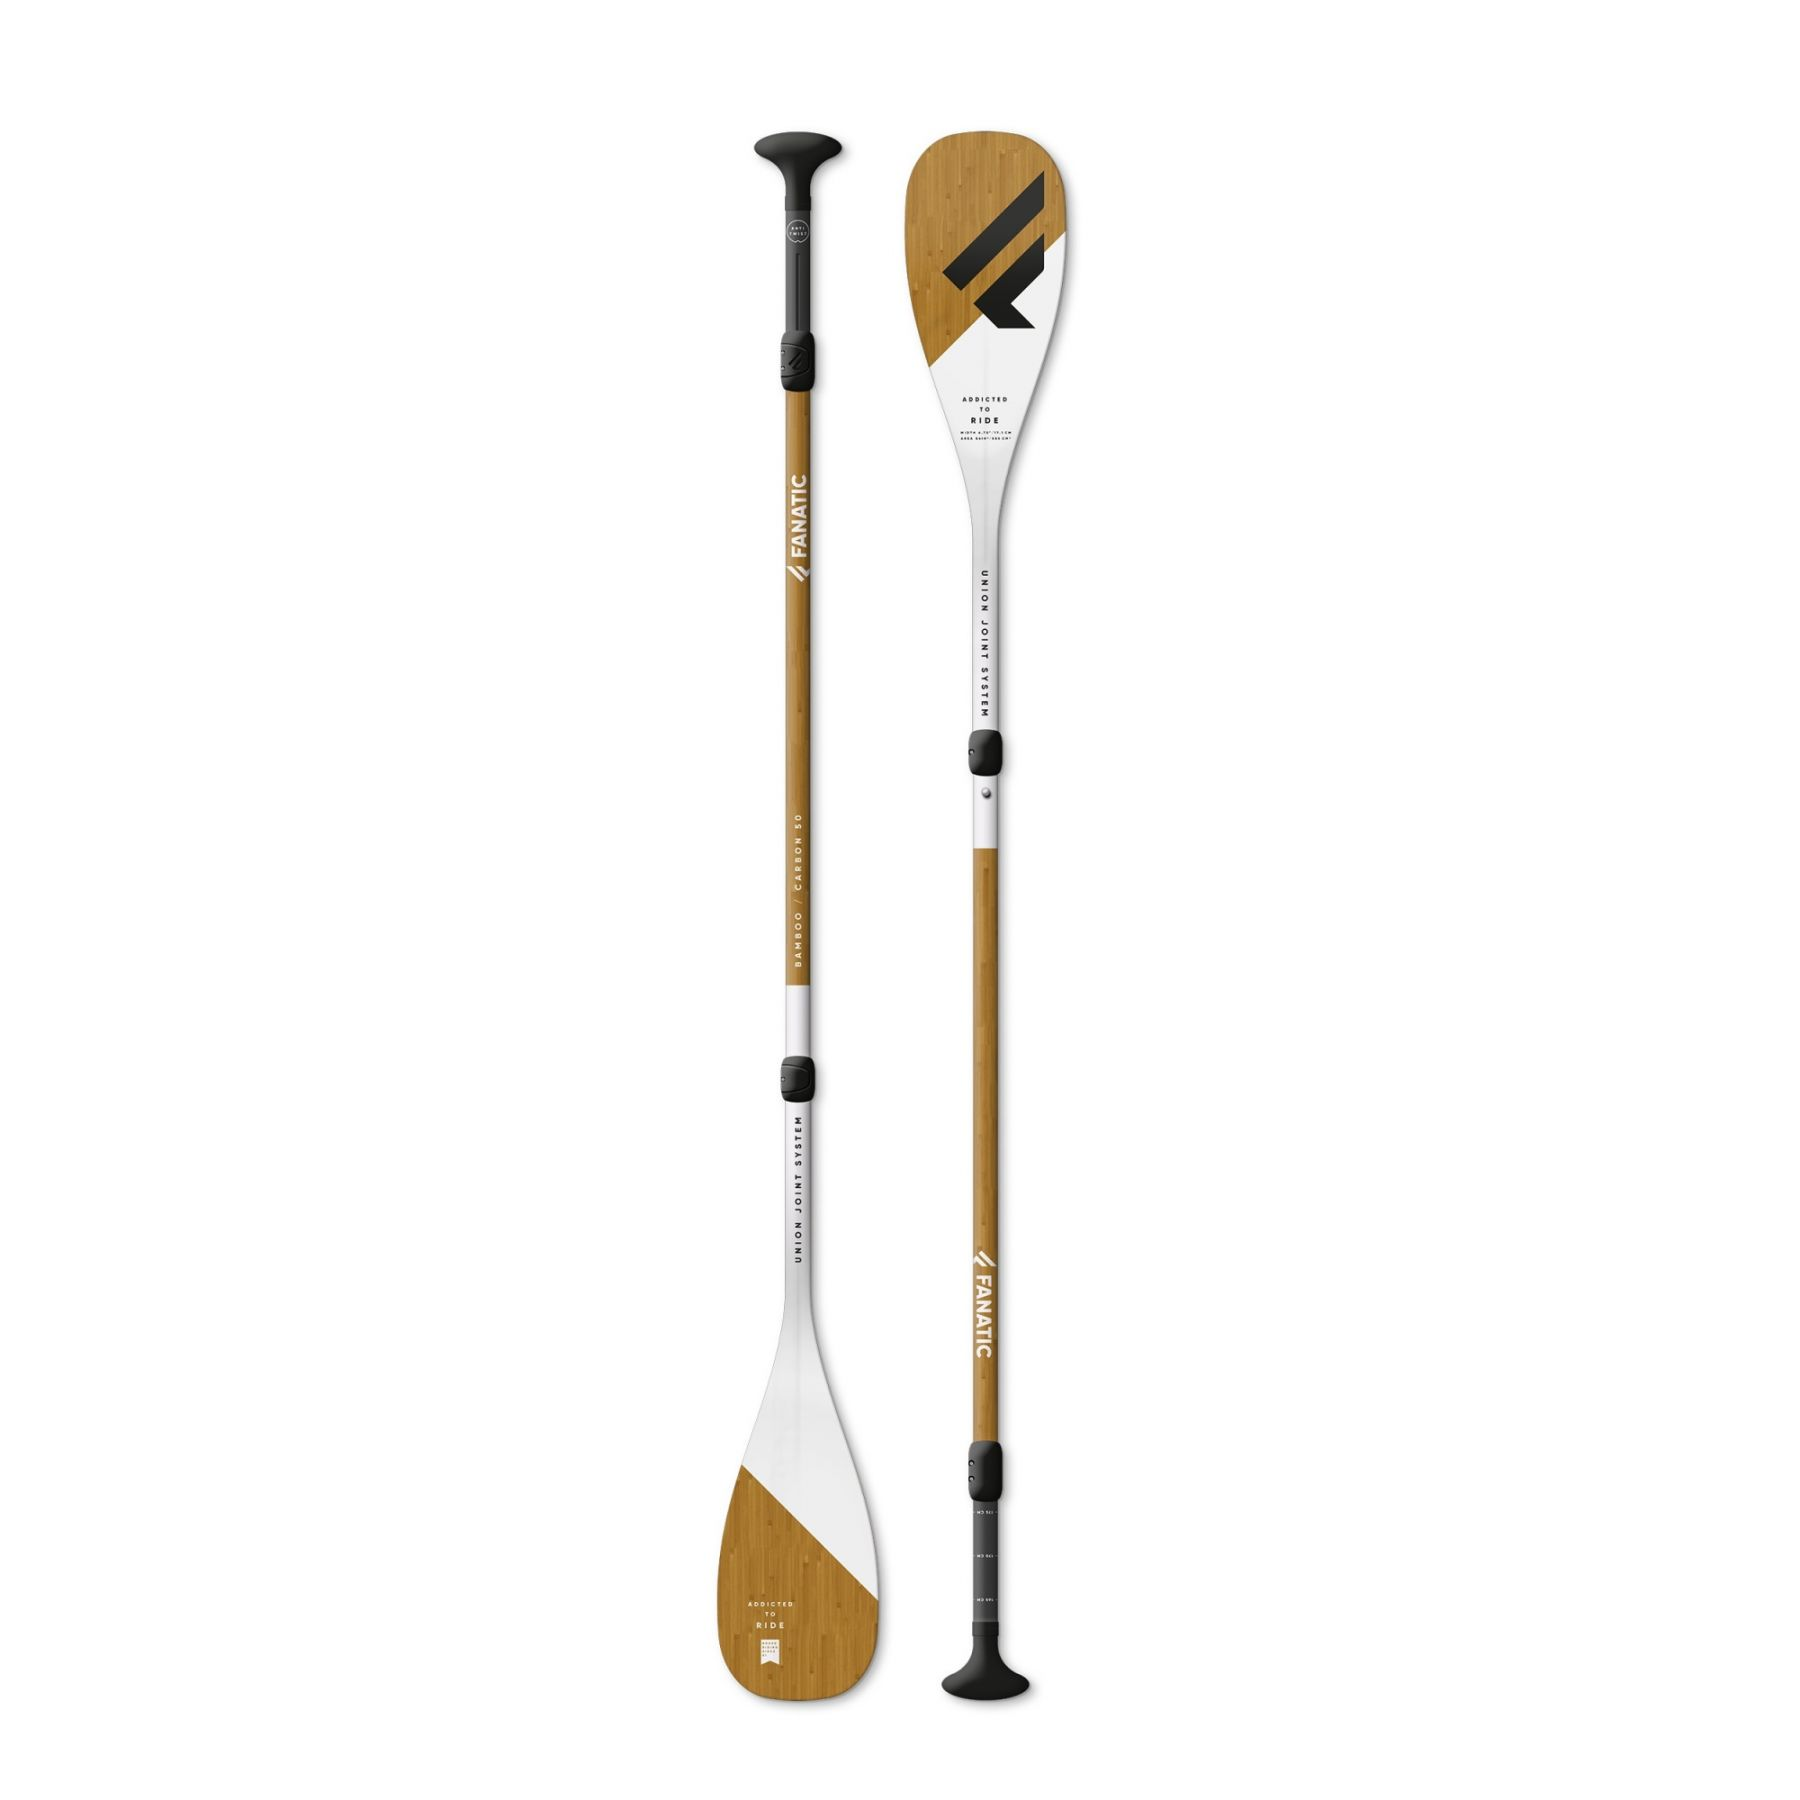 Remo de paddle surf Fanatic Carbon 50 ajustable 3 piezas